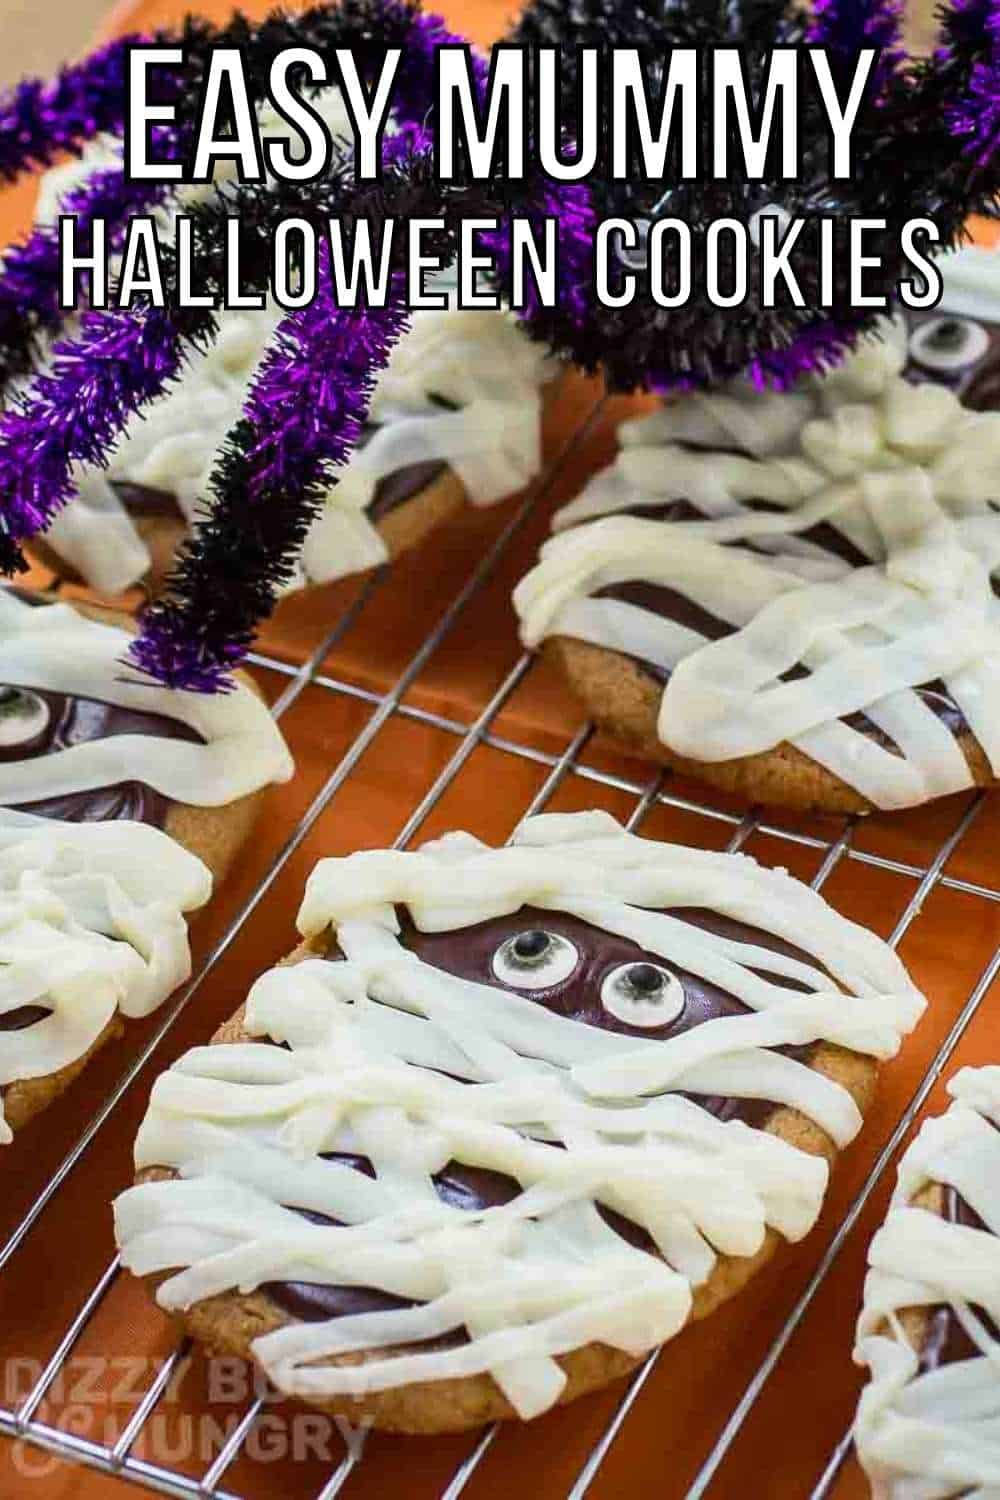 Side close up shot of multiple mummy cookies on a cooling rack with a purple and black decorative spider in the background.